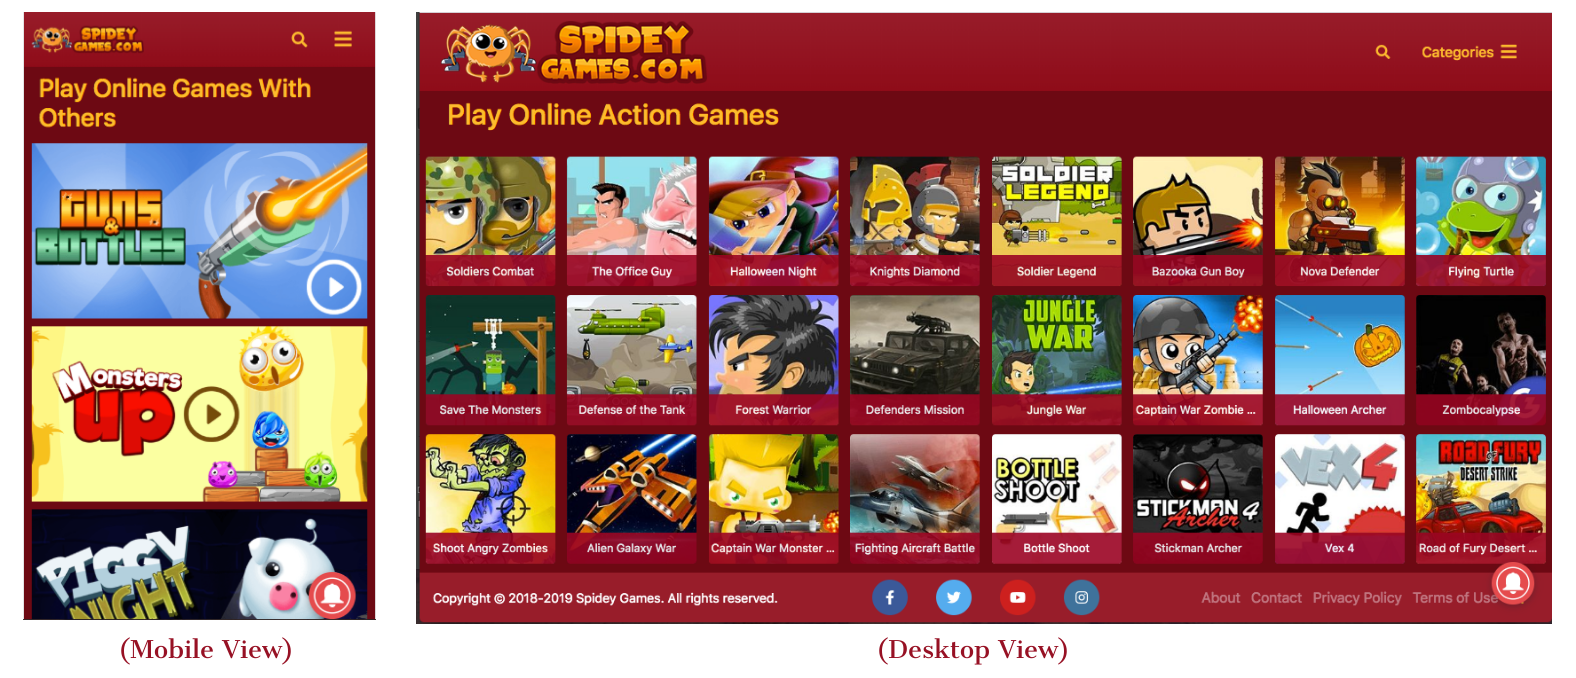 Spideygames - Play fun html5 games online